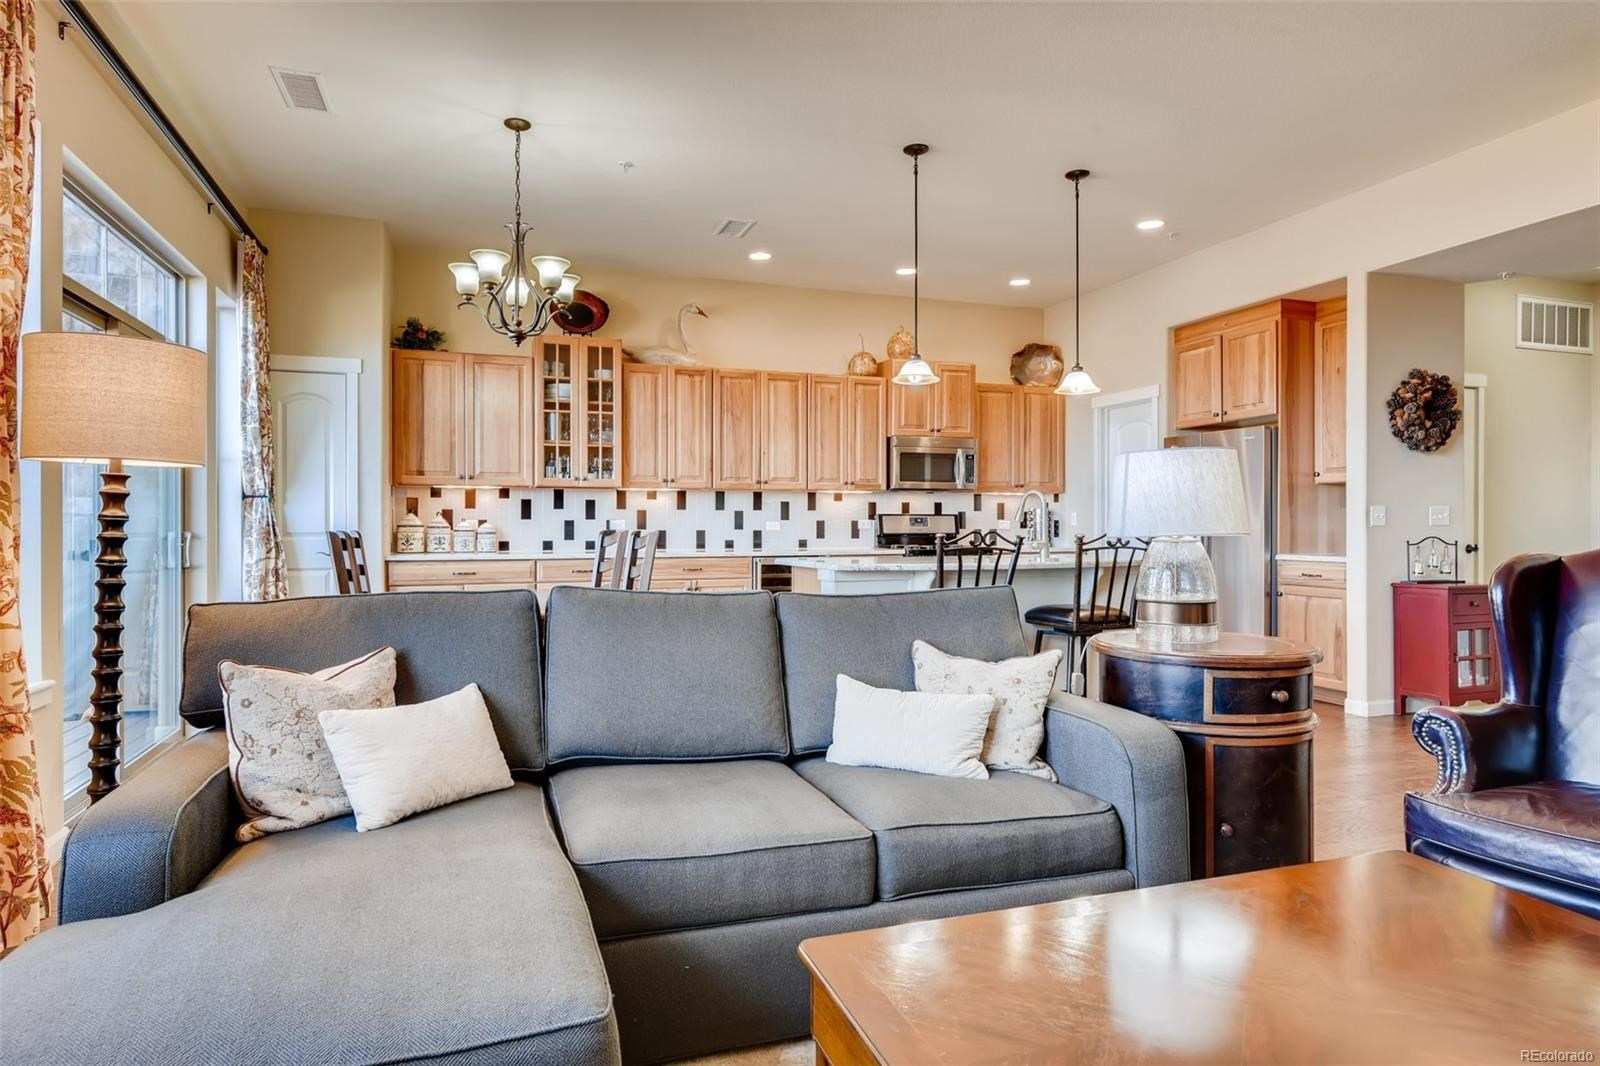 MLS# 6336333 - 5 - 2262 Primo Road #205, Highlands Ranch, CO 80129